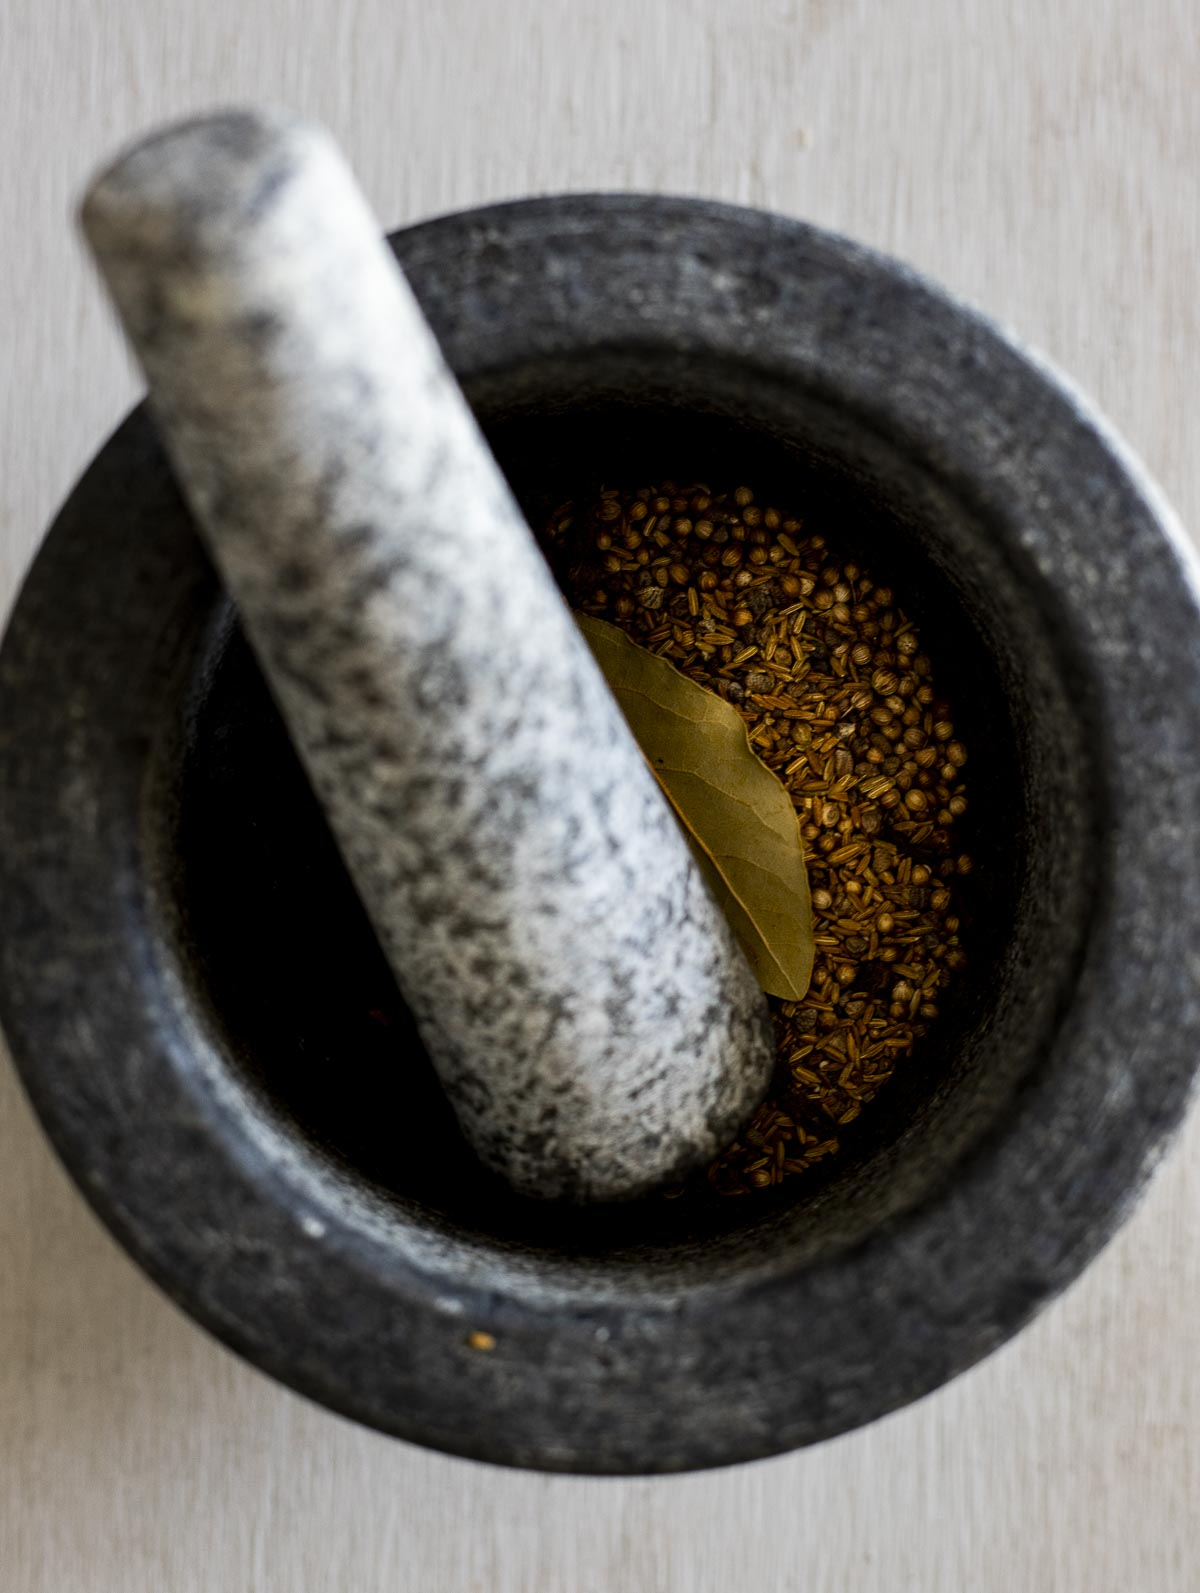 whole spices in a mortar